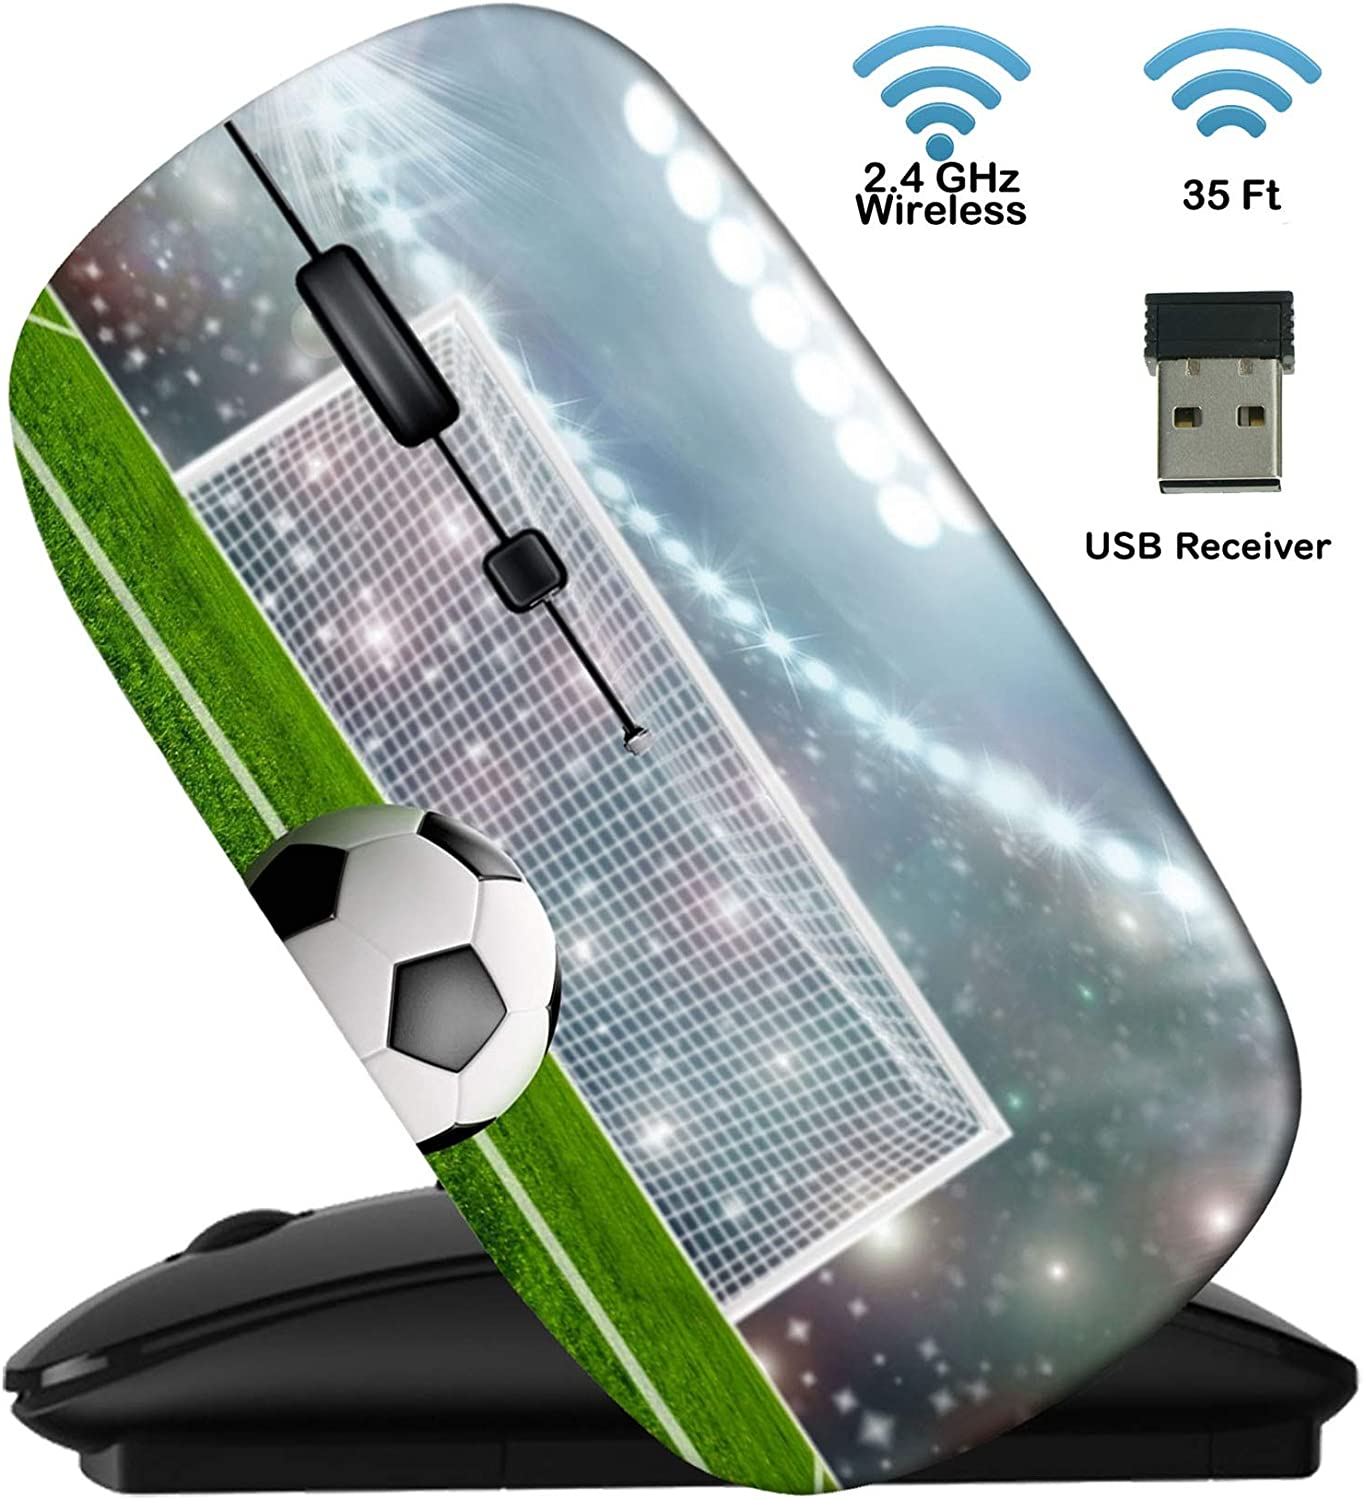 MSD Wireless Mouse Black Base Travel 2.4G Wireless Mice with USB Receiver, Noiseless and Silent Click with 1000 DPI for Notebook, pc, Laptop, Computer, mac Book, Image ID: 34502875 Soccer Ball on gre